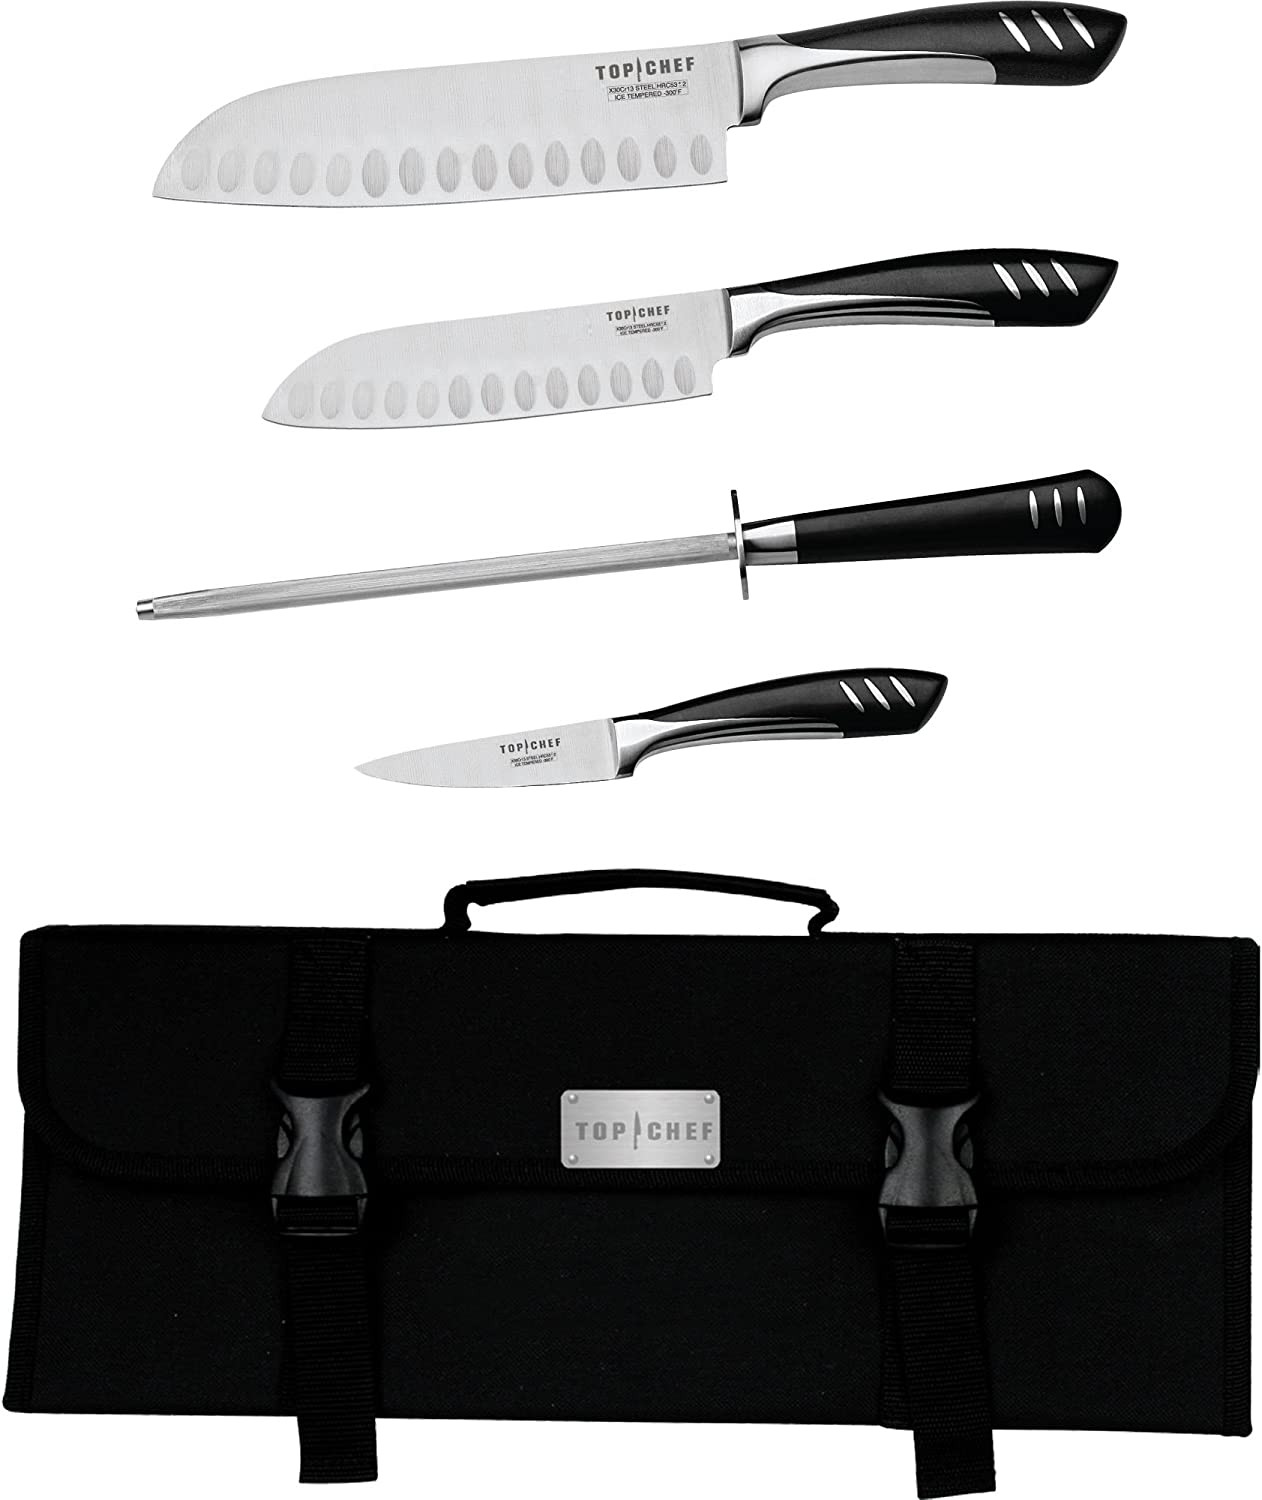 Amazon Com Top Chef By Master Cutlery 5 Piece Chef Basic Knife Set With Nylon Carrying Case Home Kitchen